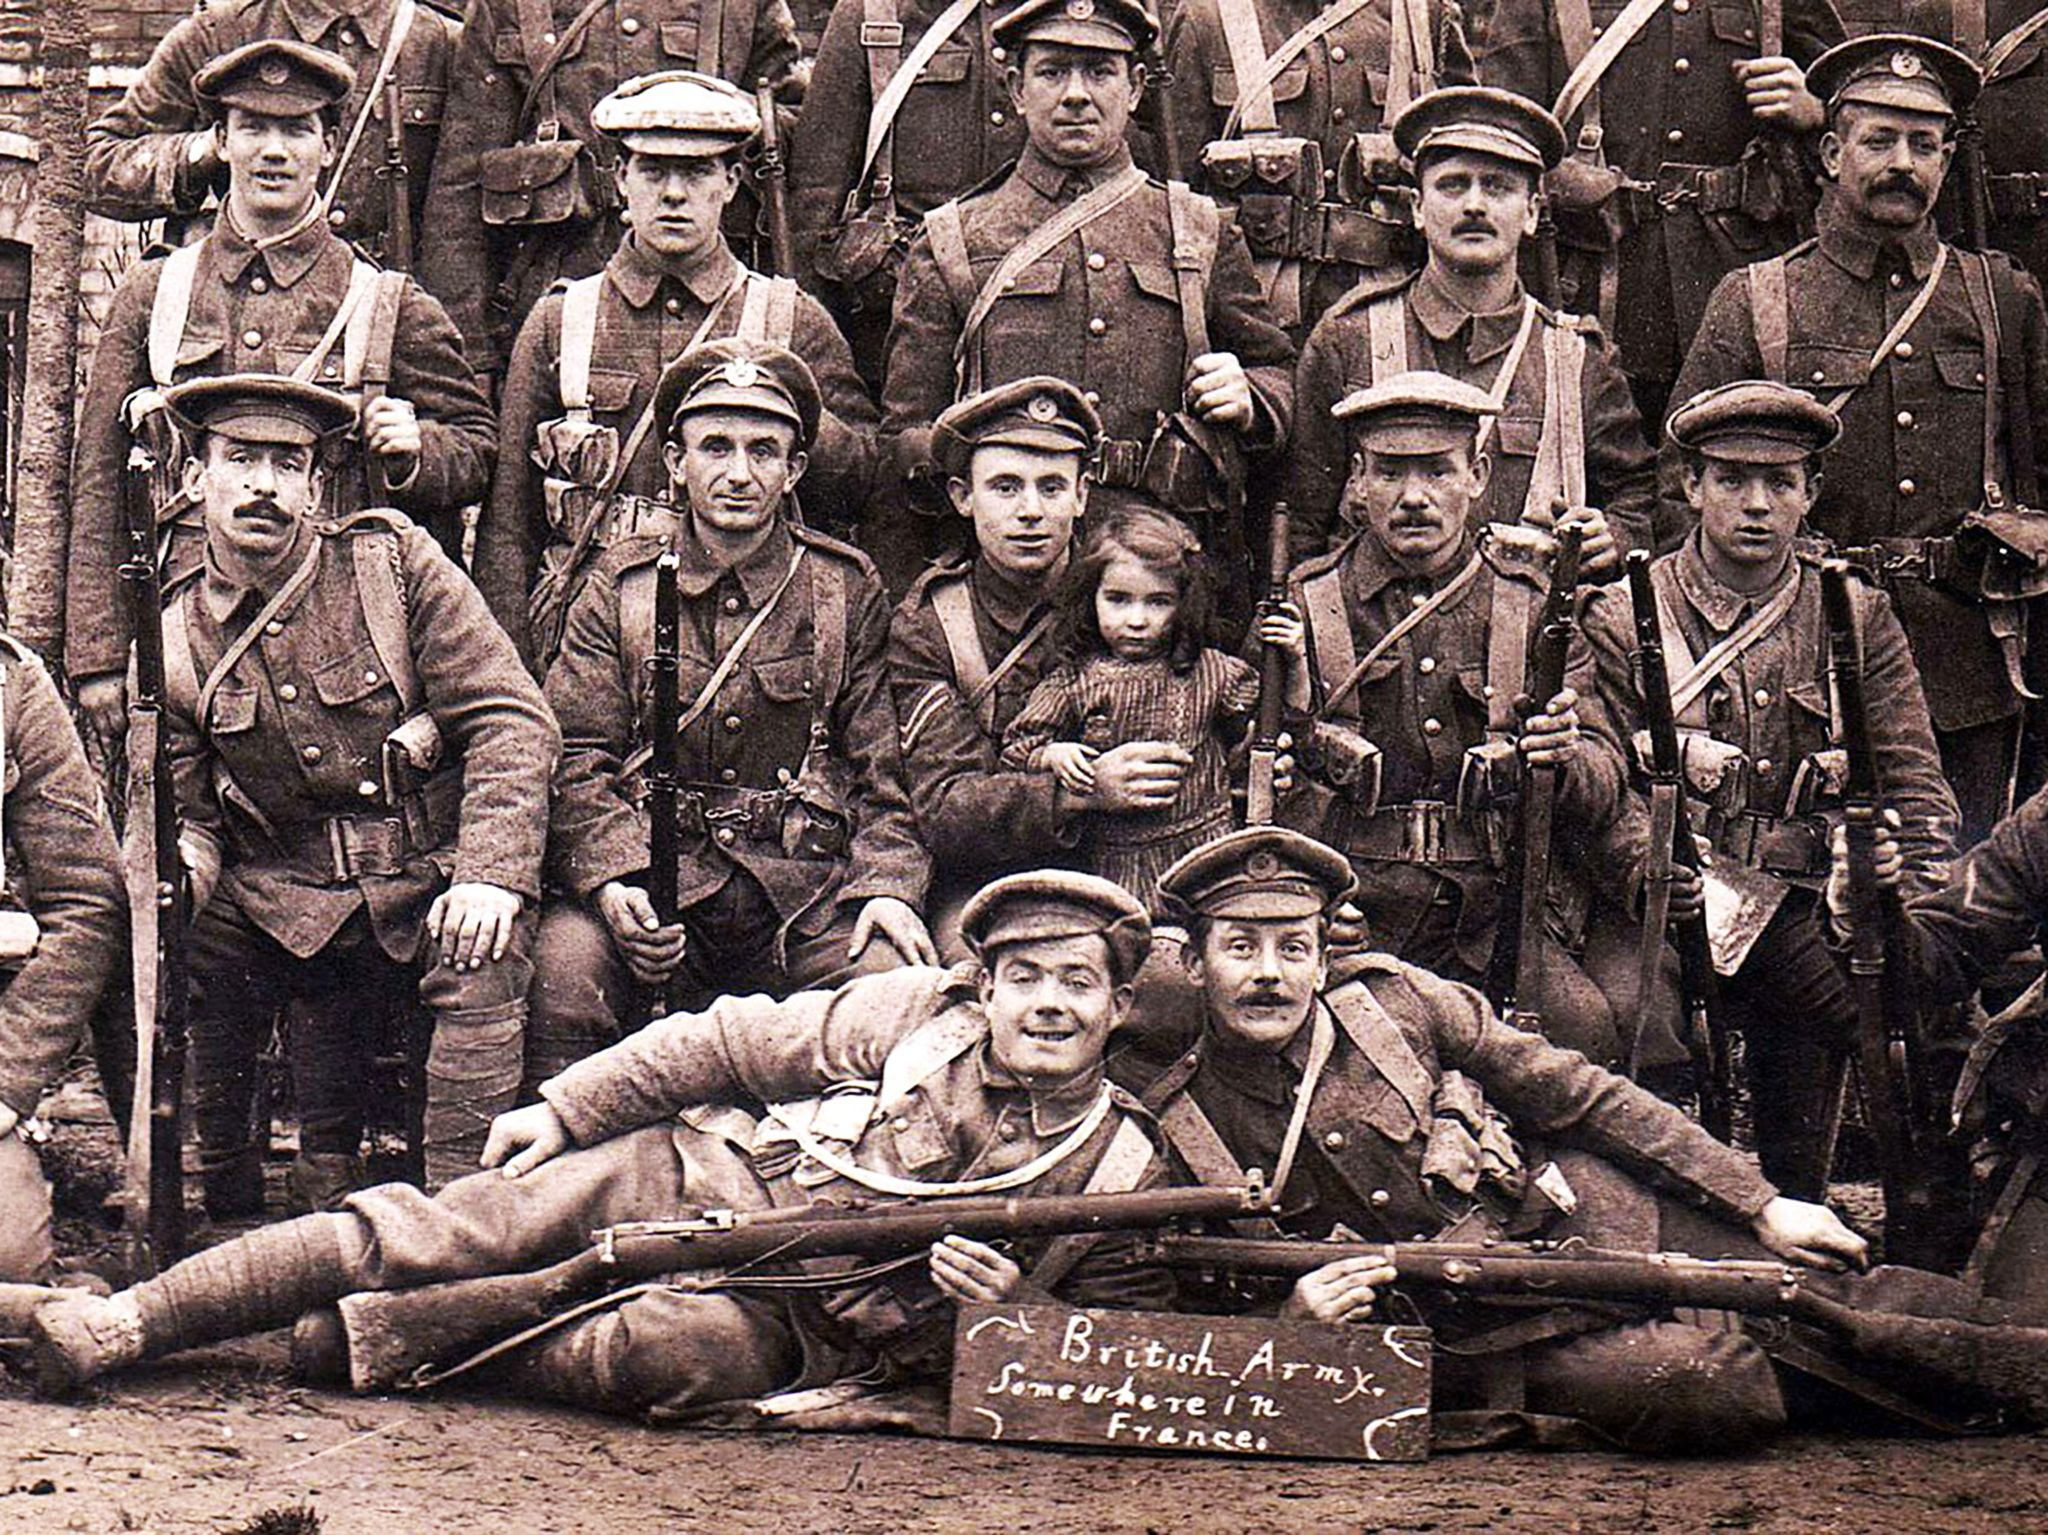 France:  Picture of the British Army. This image is from WWI: The Tunnels of Death. [Photo of the day - November 2018]